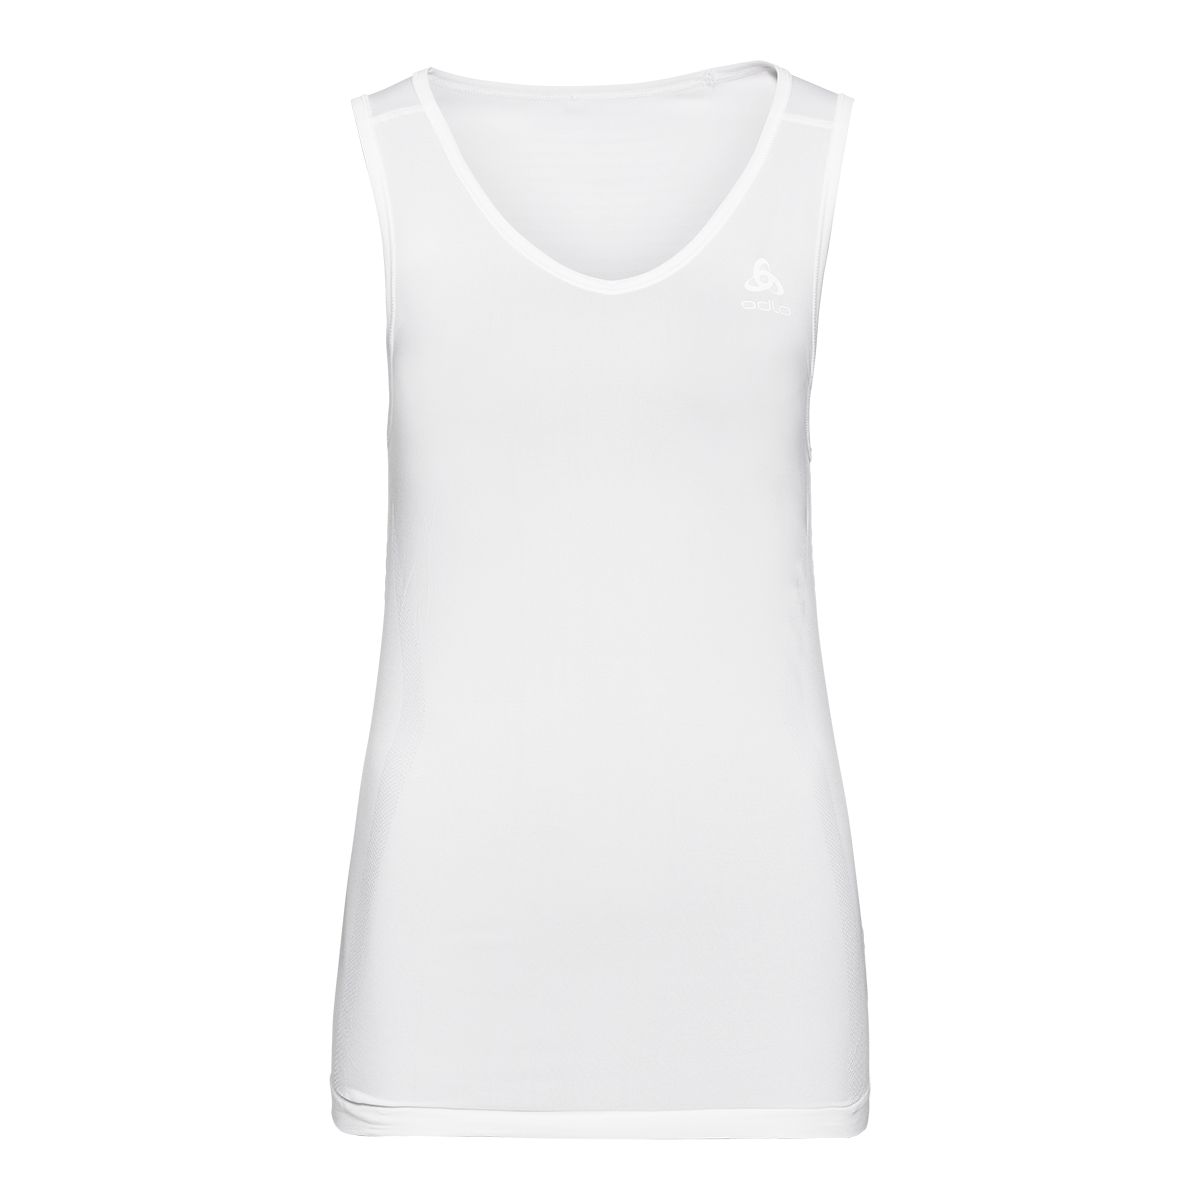 PERFORMANCE X-LIGHT SUW TOP V-neck Singlet Damen Unterhemd ärmellos